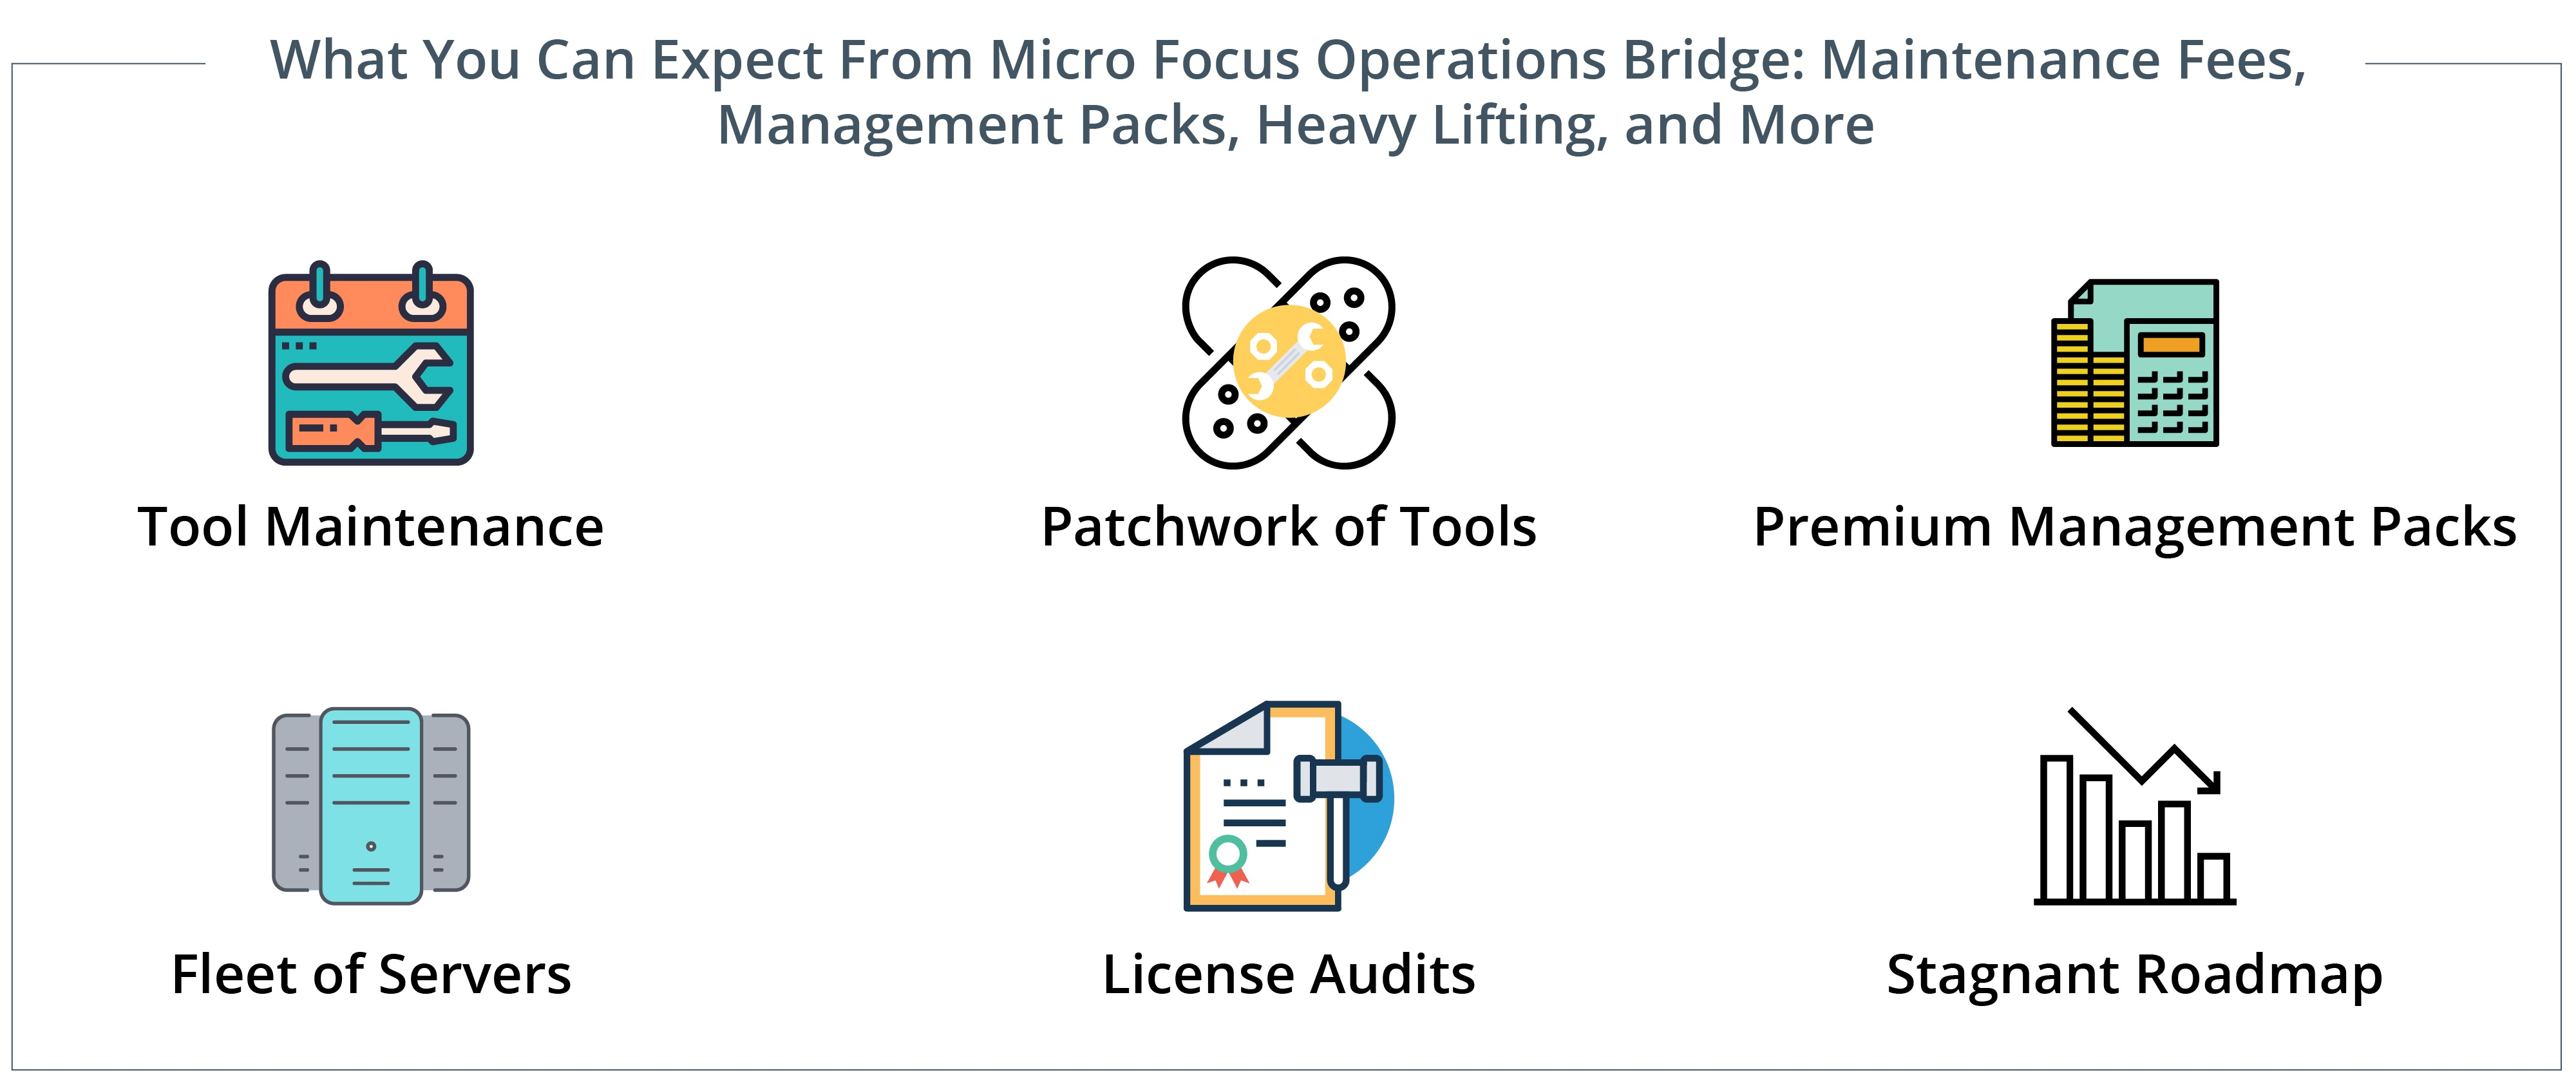 What You Can Expect From Operations Bridge